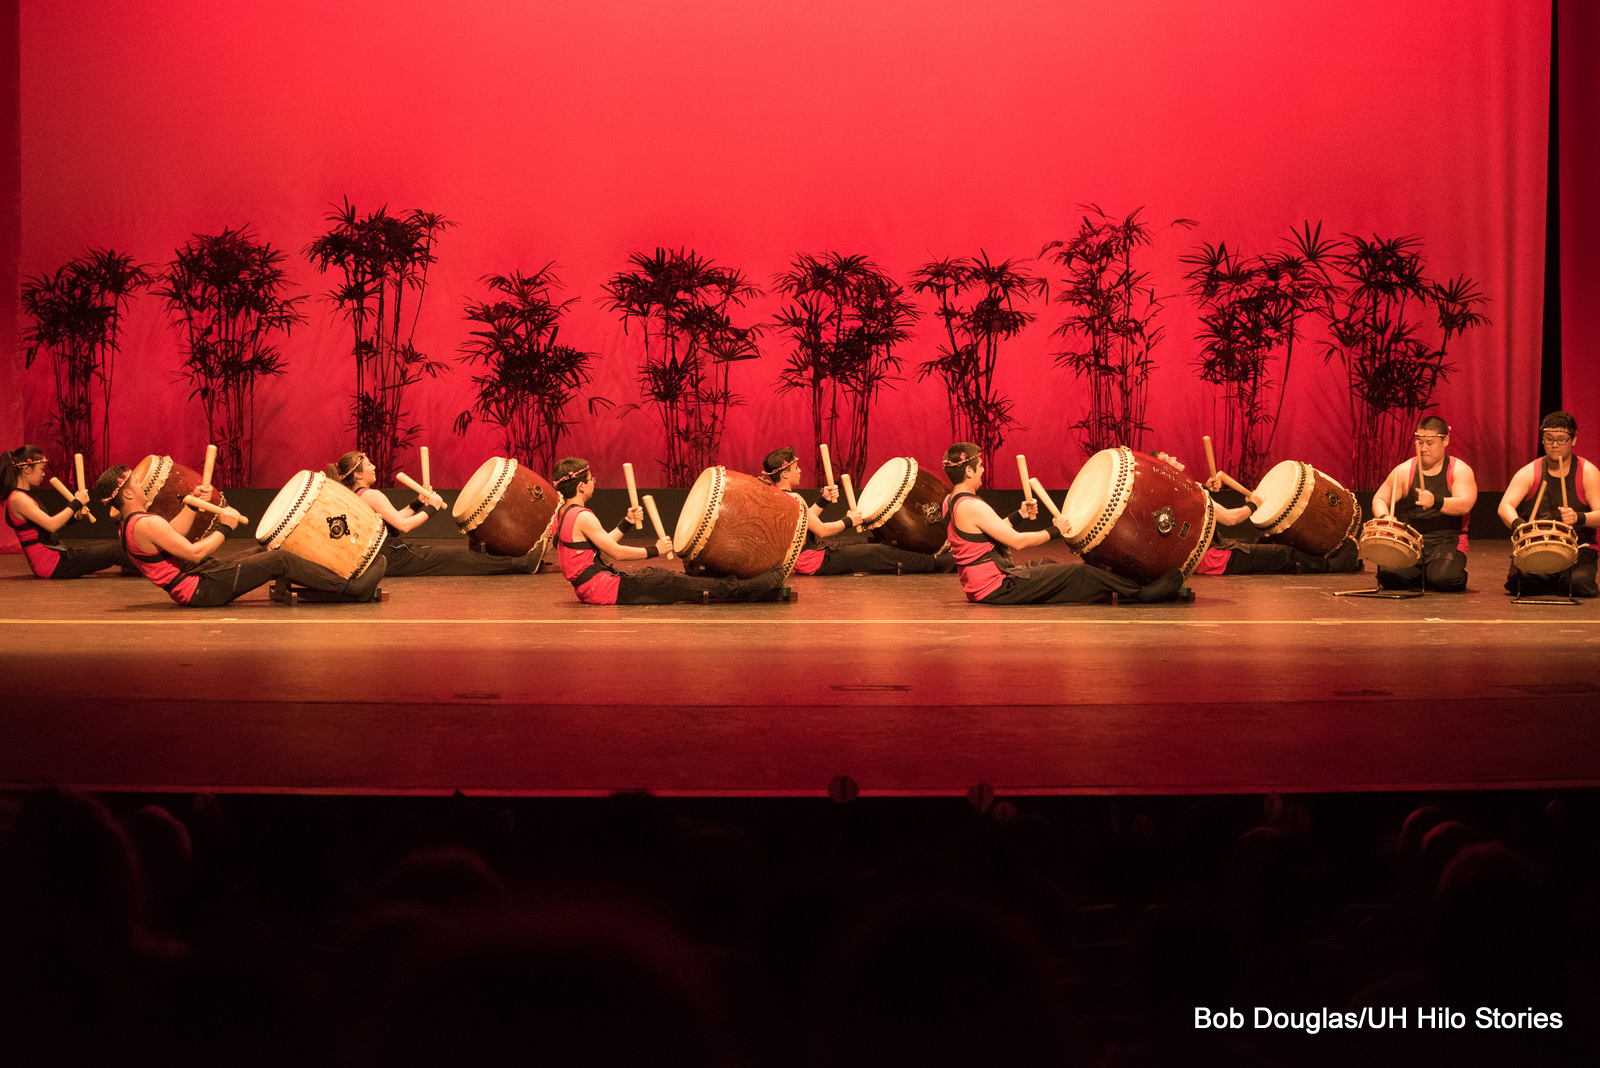 Group of Taiko drummers sit on floor, legs extended, beating drums. The light is red.